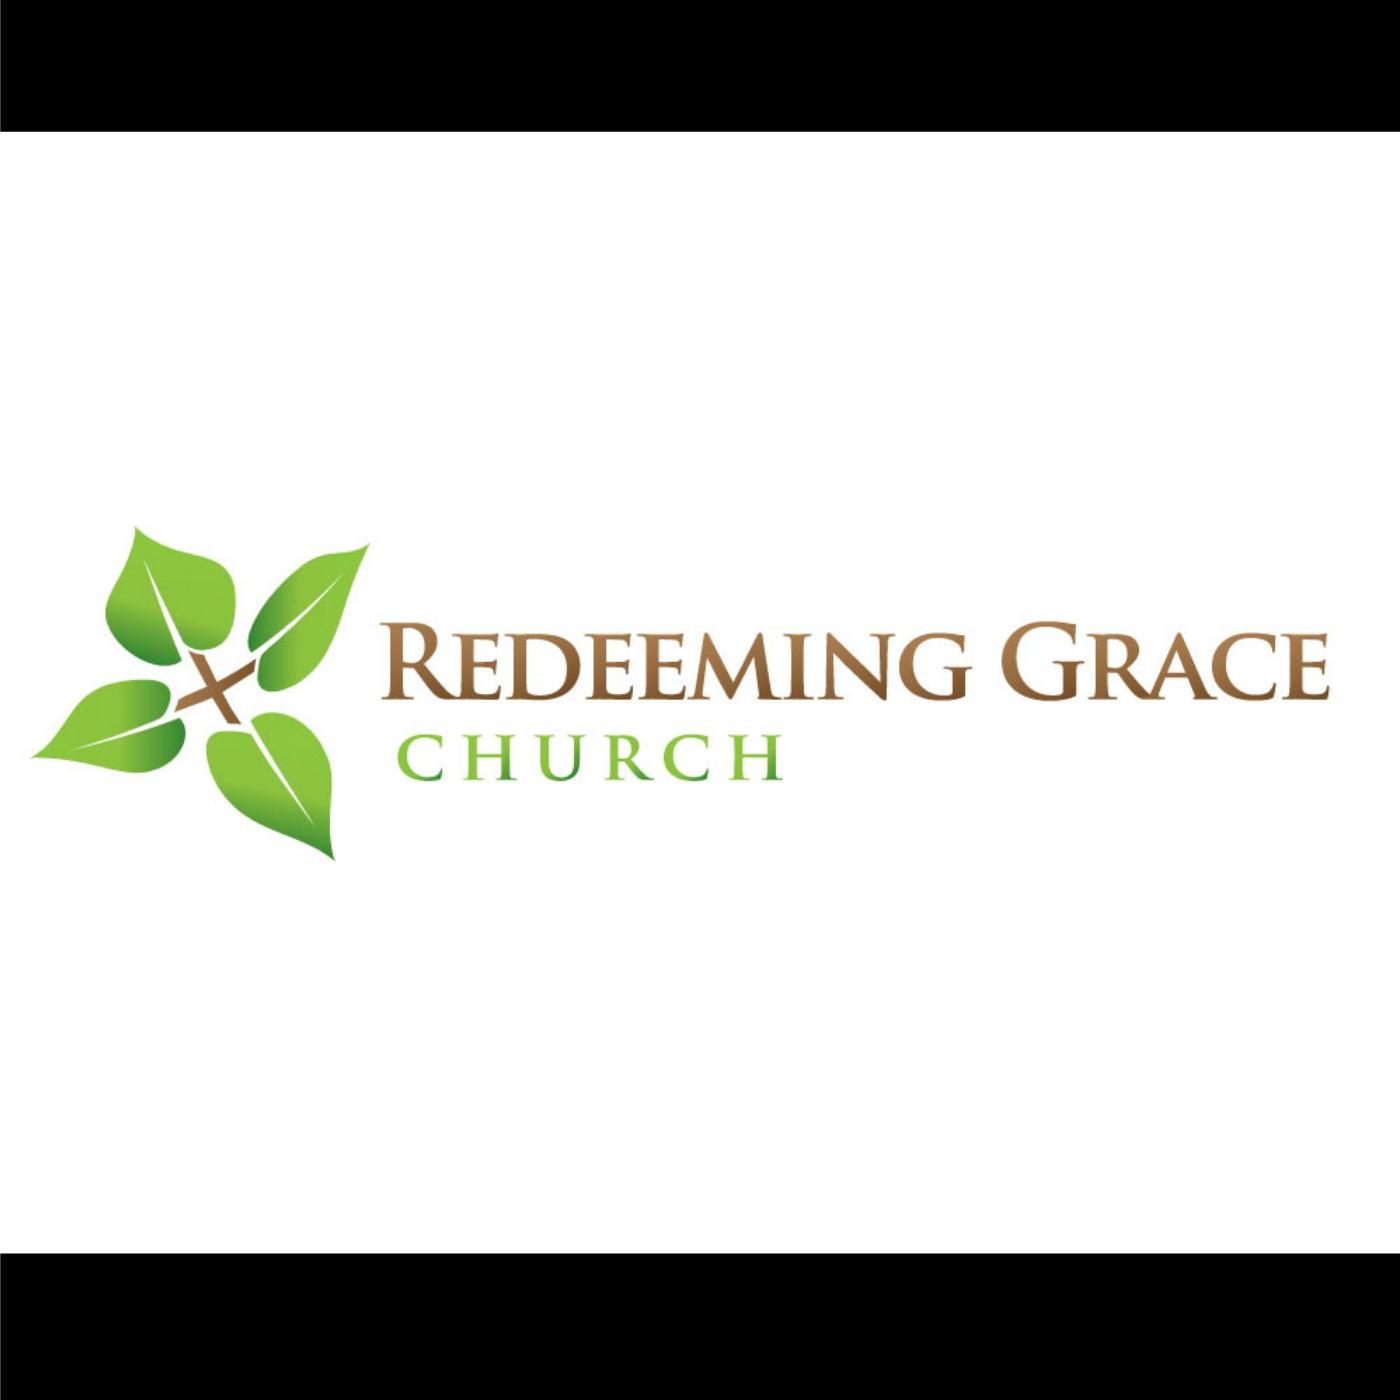 Redeeming Grace Church